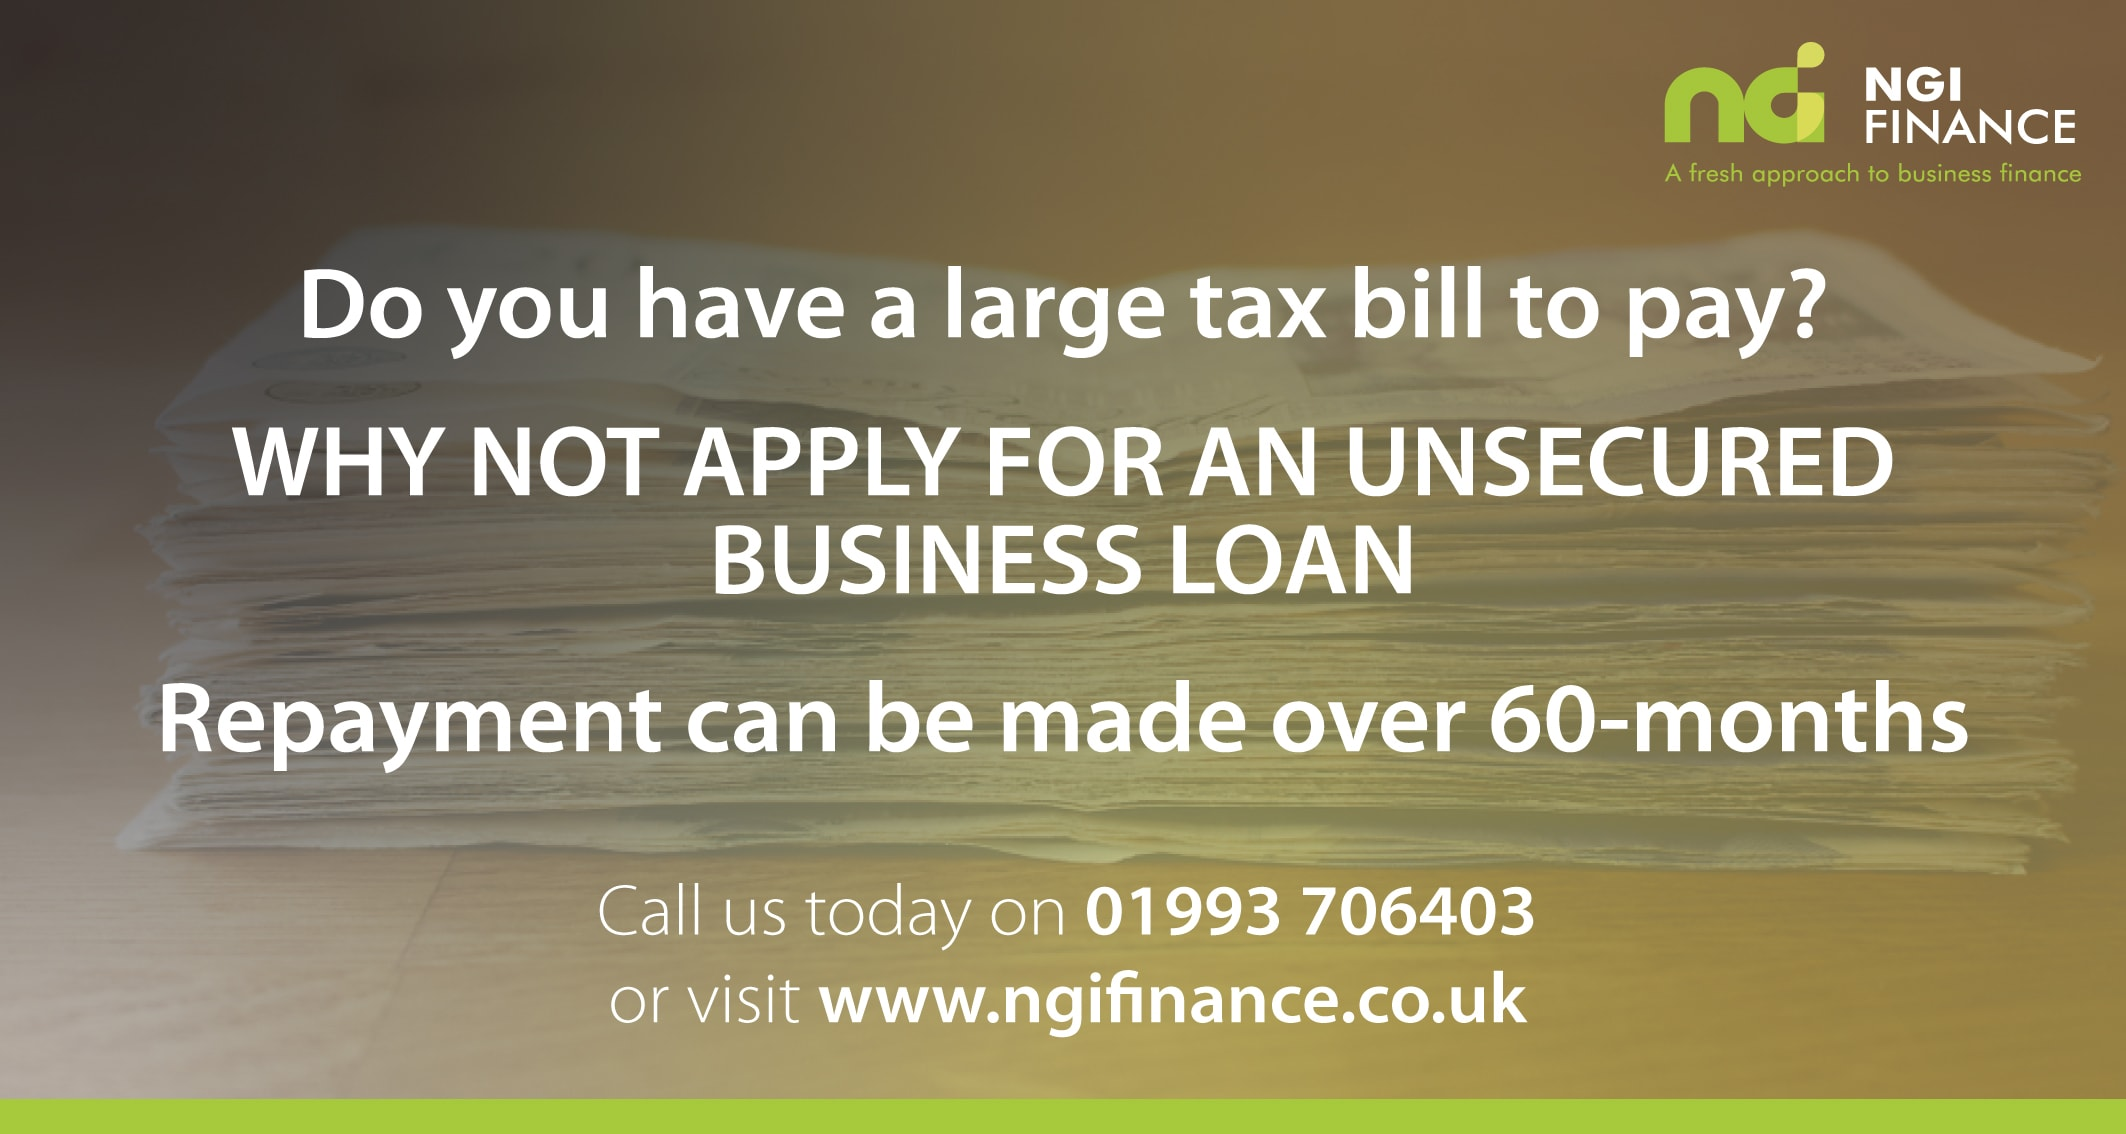 Tax Payments | Unsecured Business Loans | Finance for Tax Payments | Help to Pay Tax